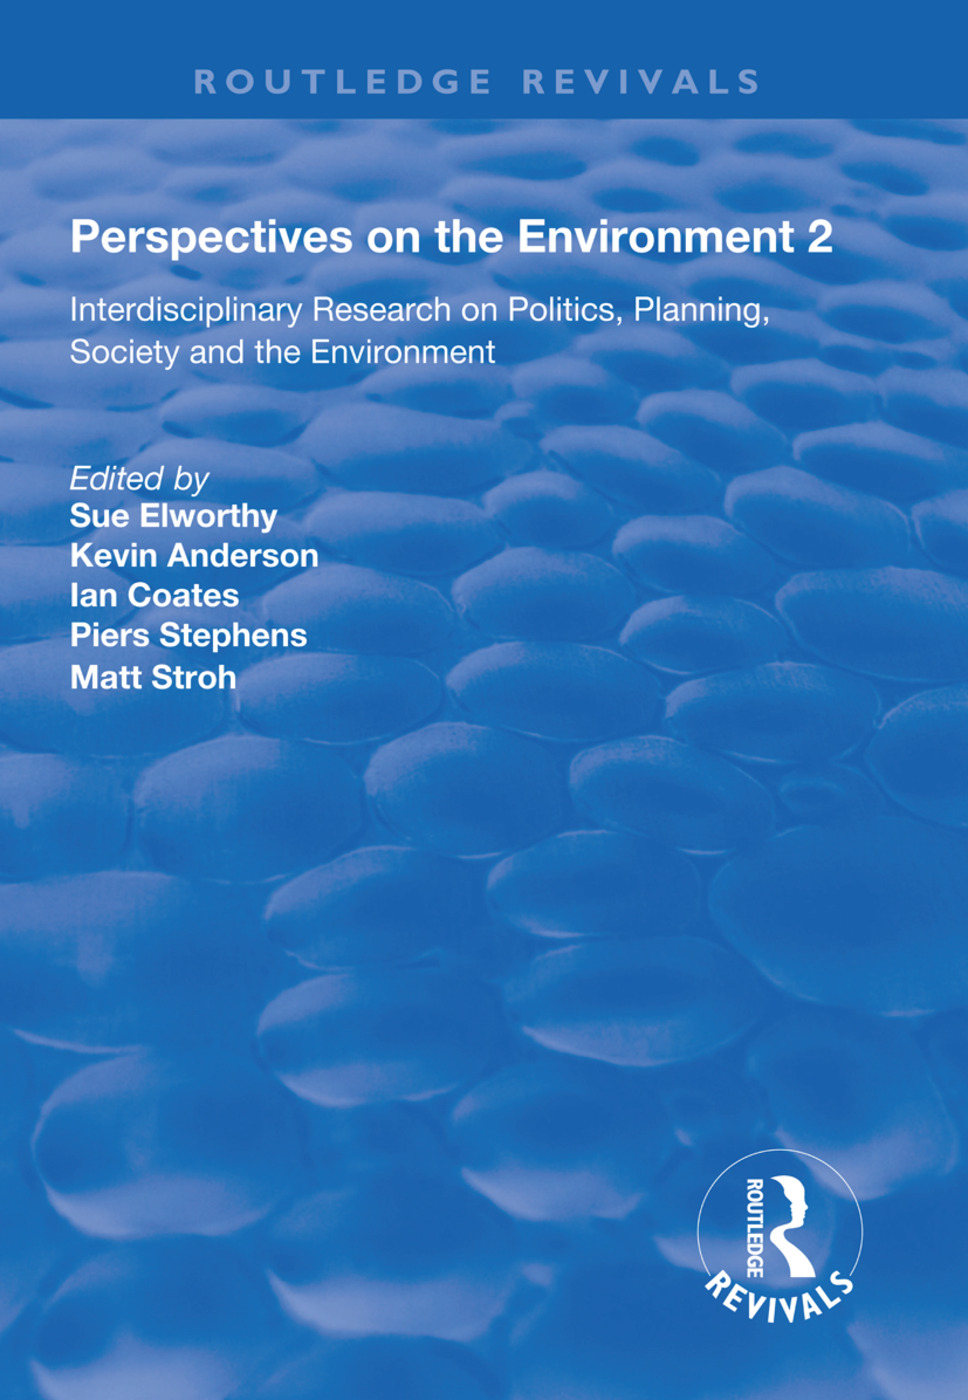 Perspectives on the Environment (Volume 2): Interdisciplinary Research Network on Environment and Society, 1st Edition (Paperback) book cover